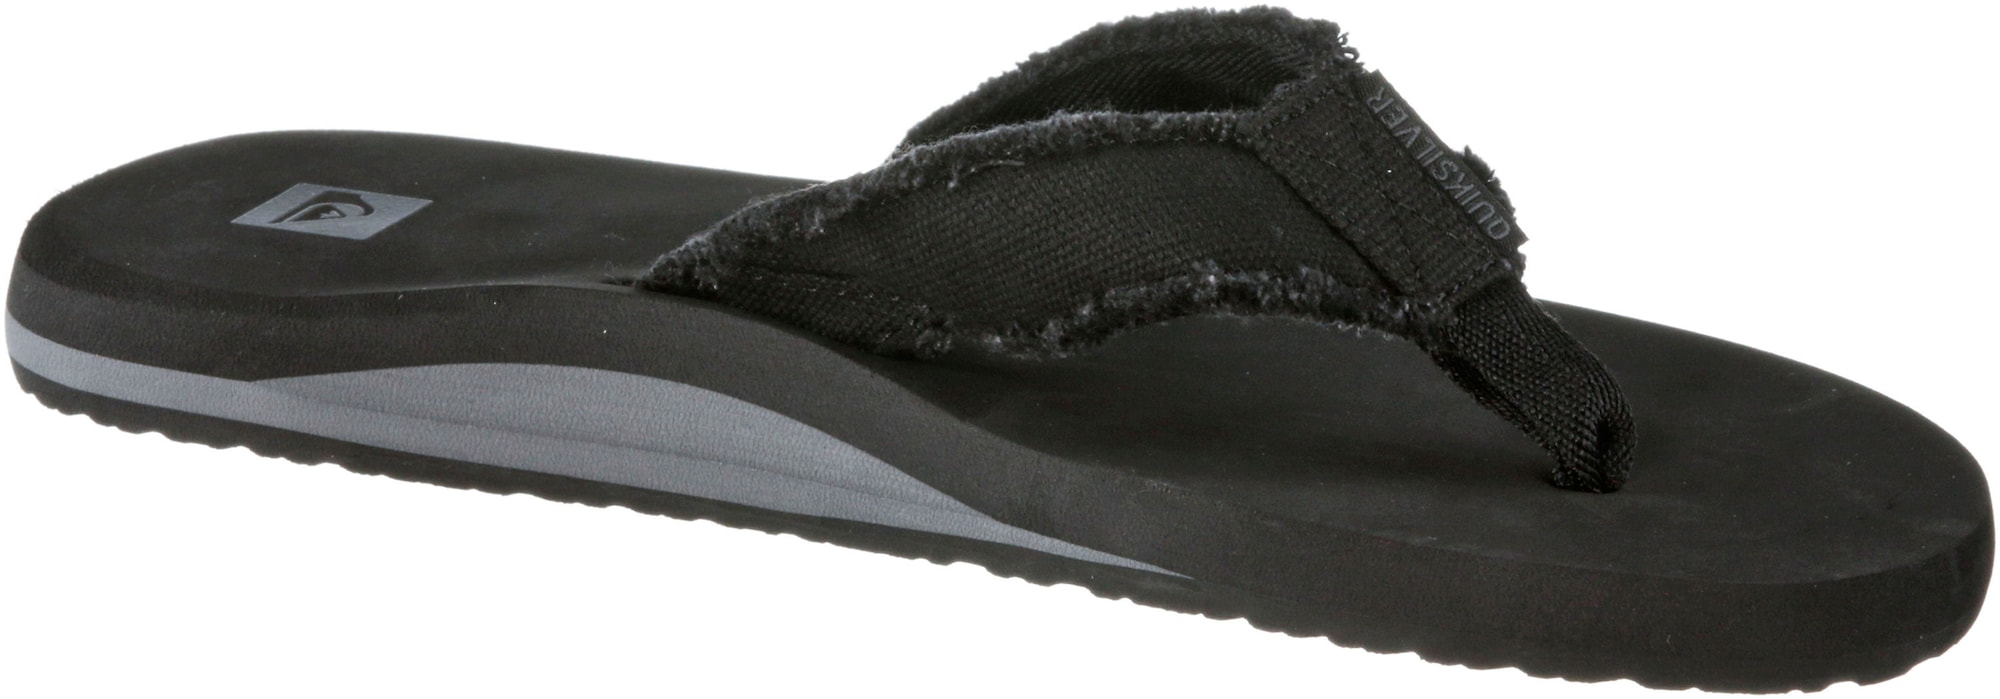 QUIKSILVER, Heren Teenslippers 'Monkey Abiss', zwart